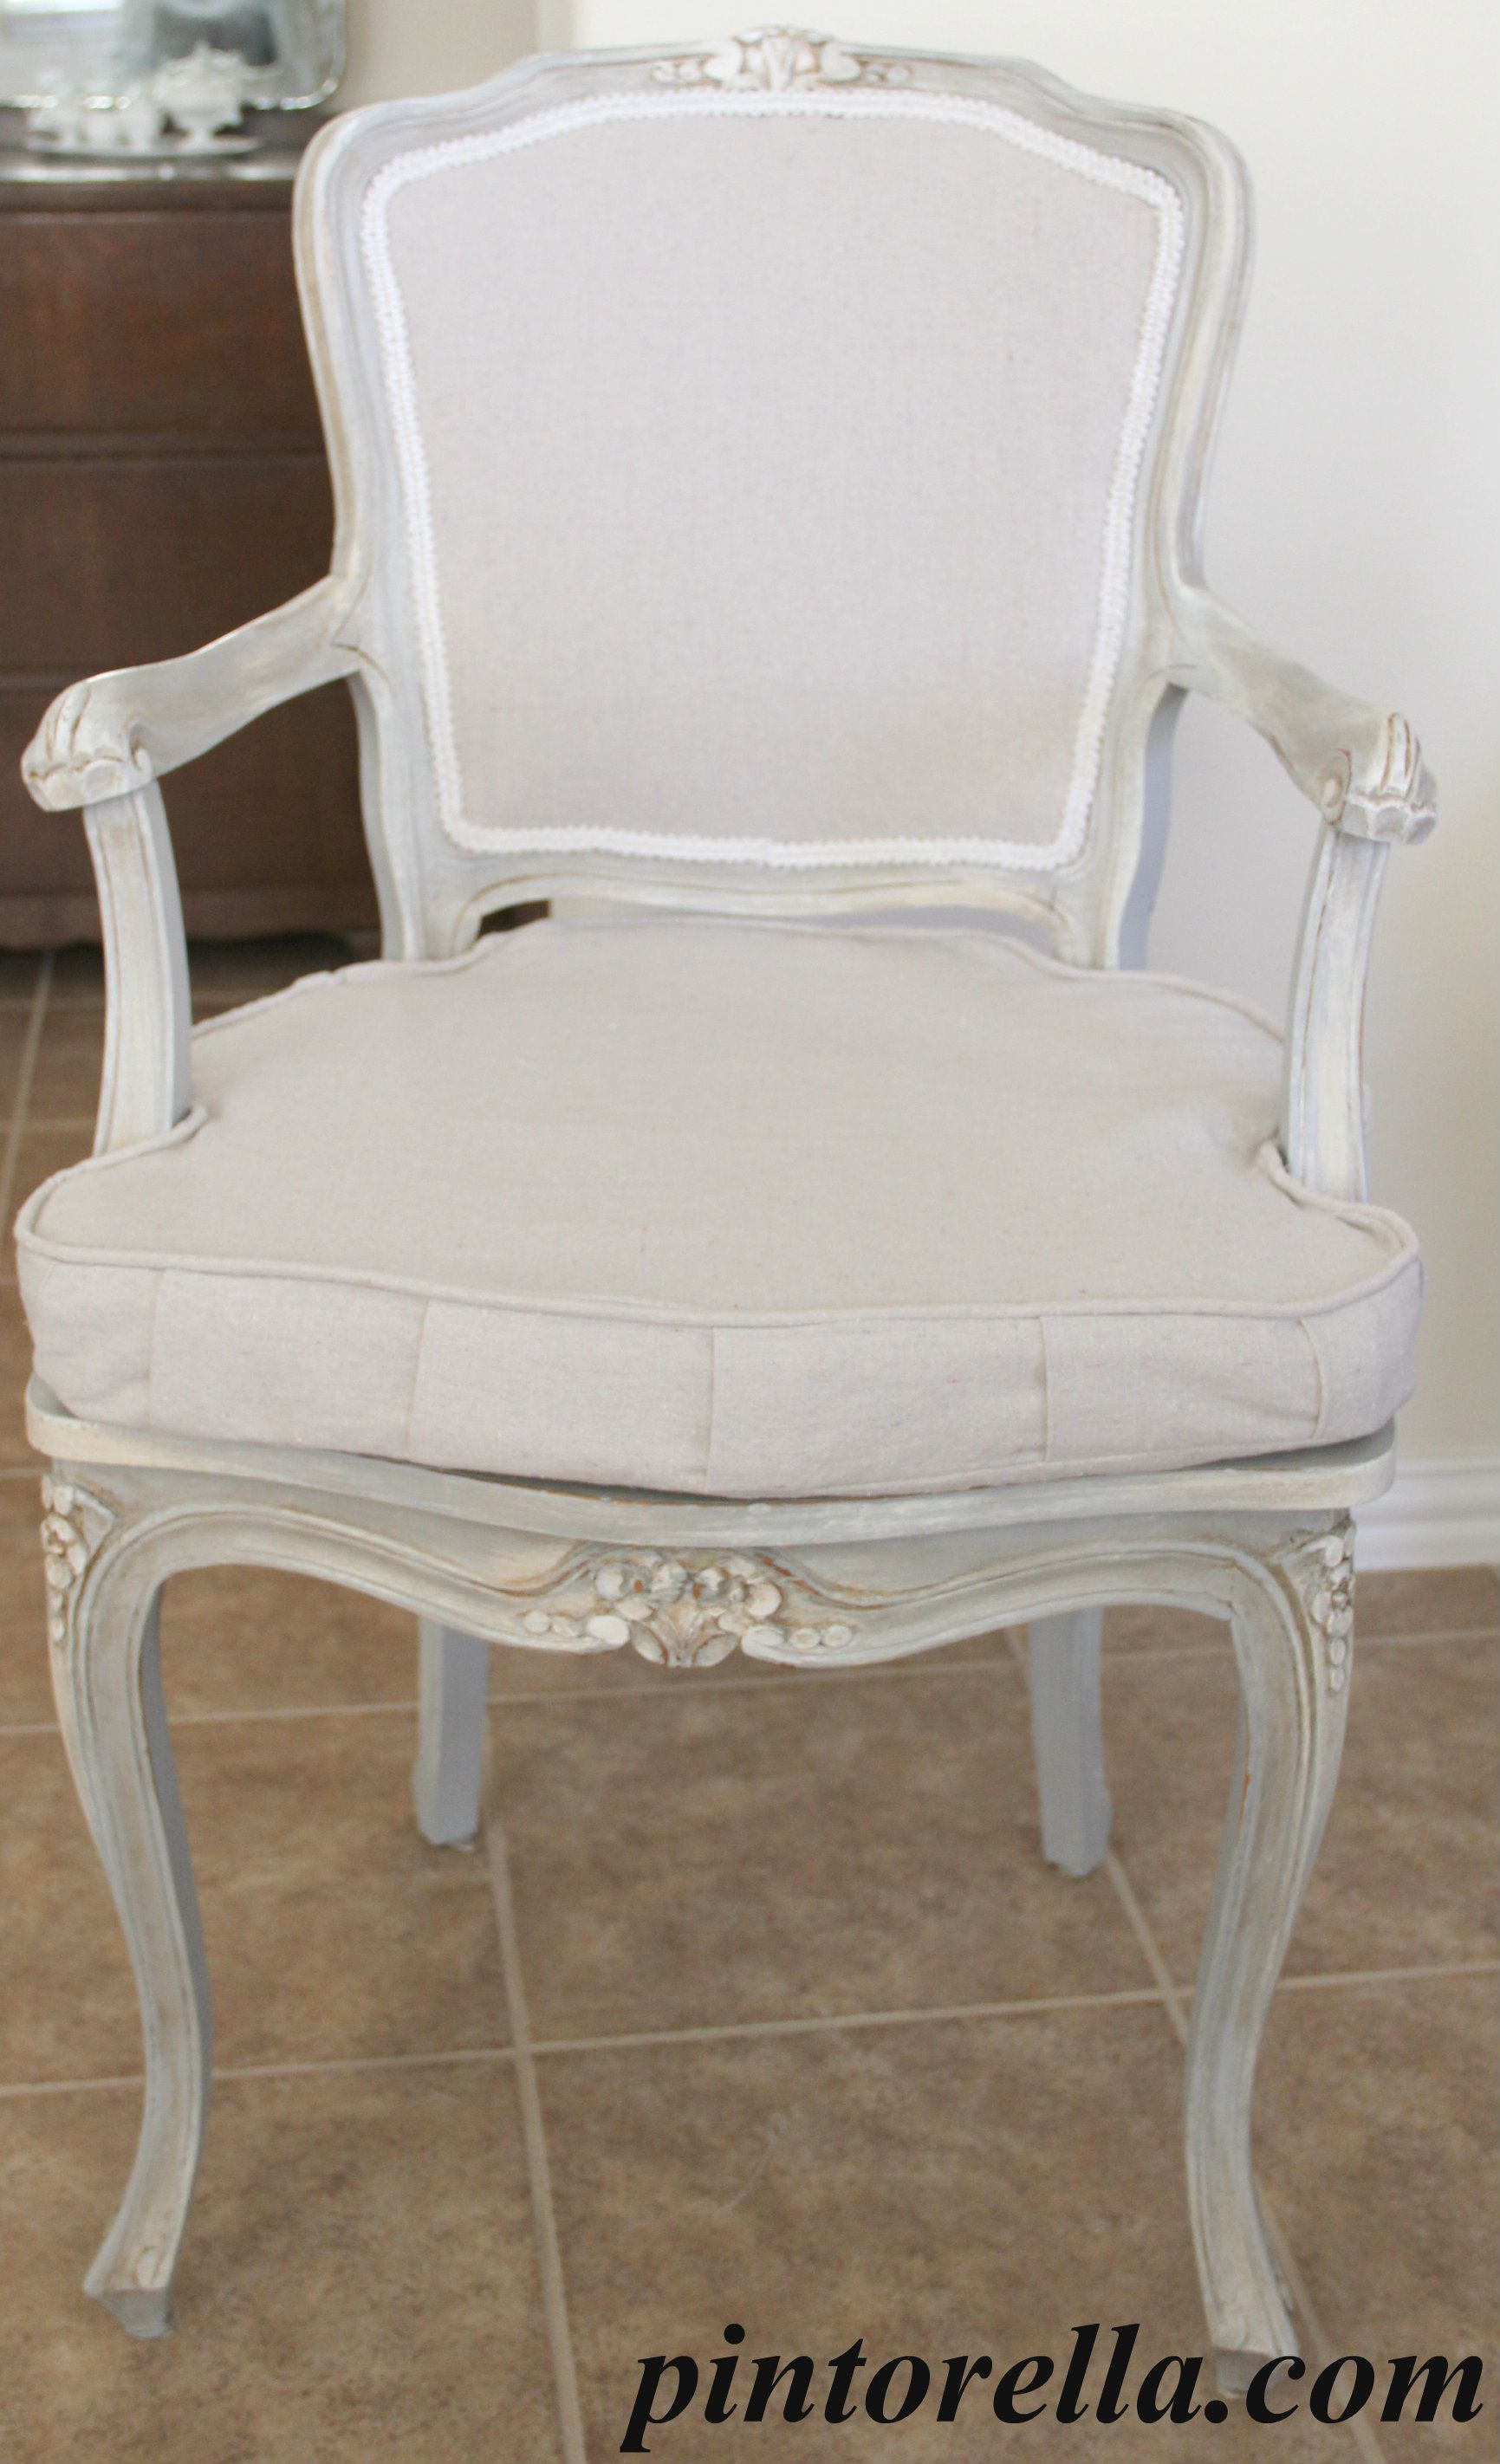 Cane Chair Painted in Chalk Paint